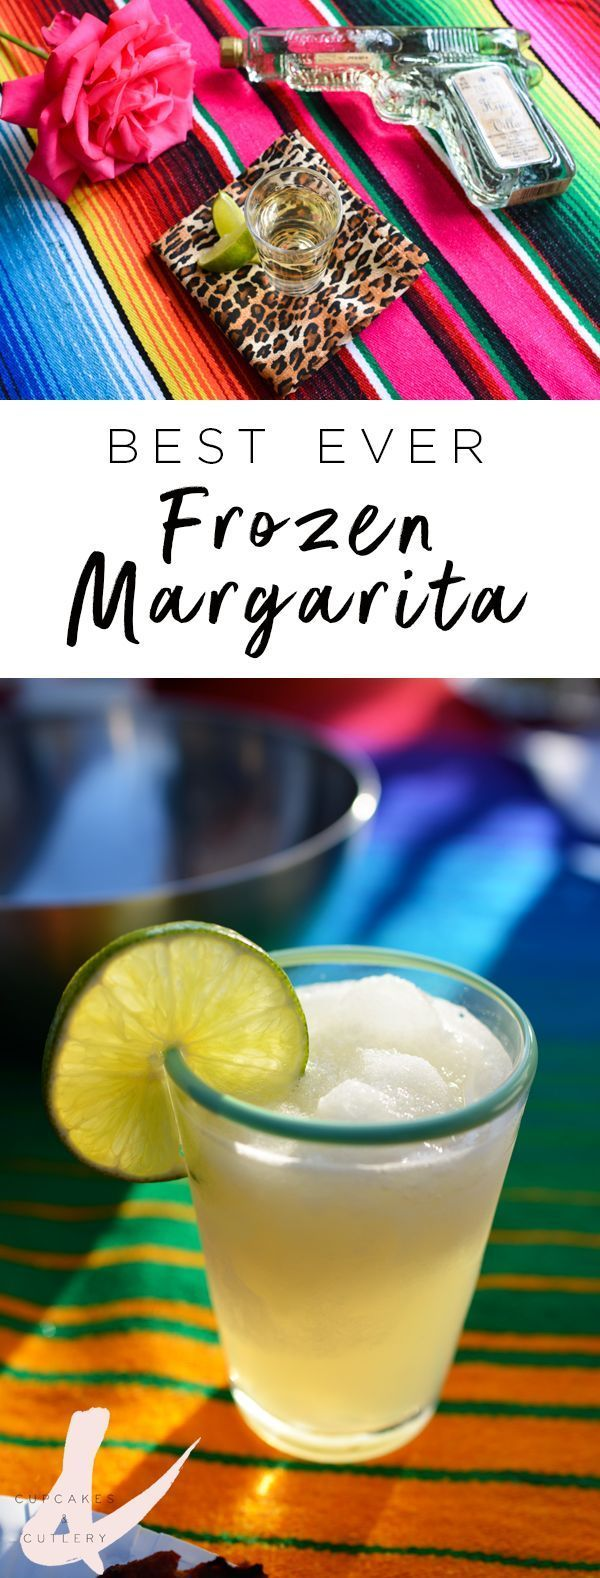 Best ever frozen margarita recipe! It's super easy. You'll want to drink these by the pitcher!